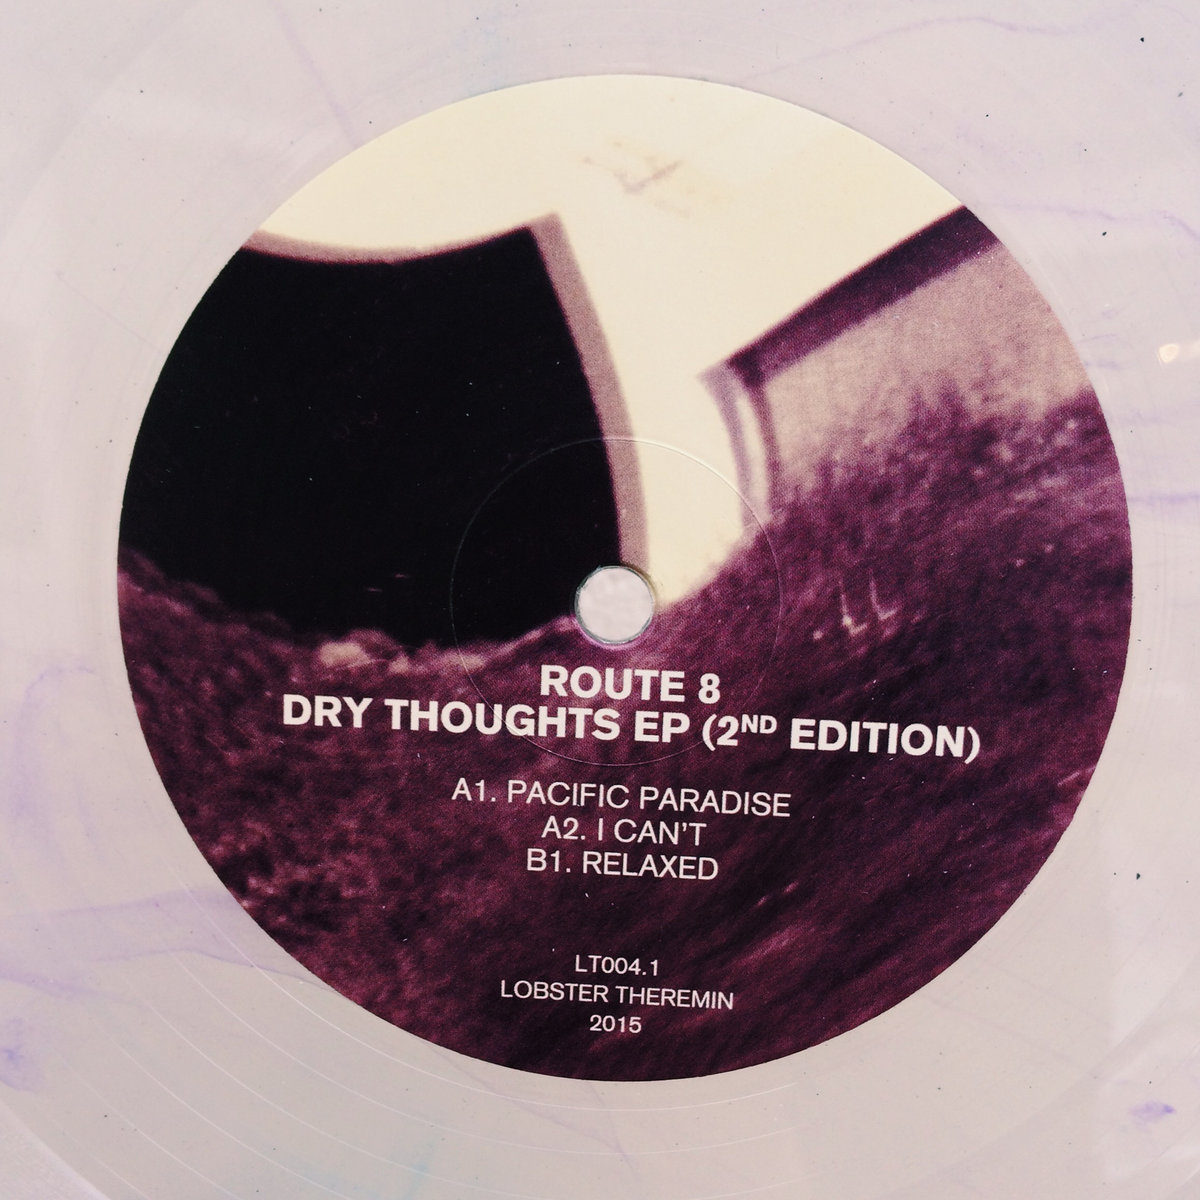 Dry Thoughts EP (2nd Edition) | Lobster Theremin